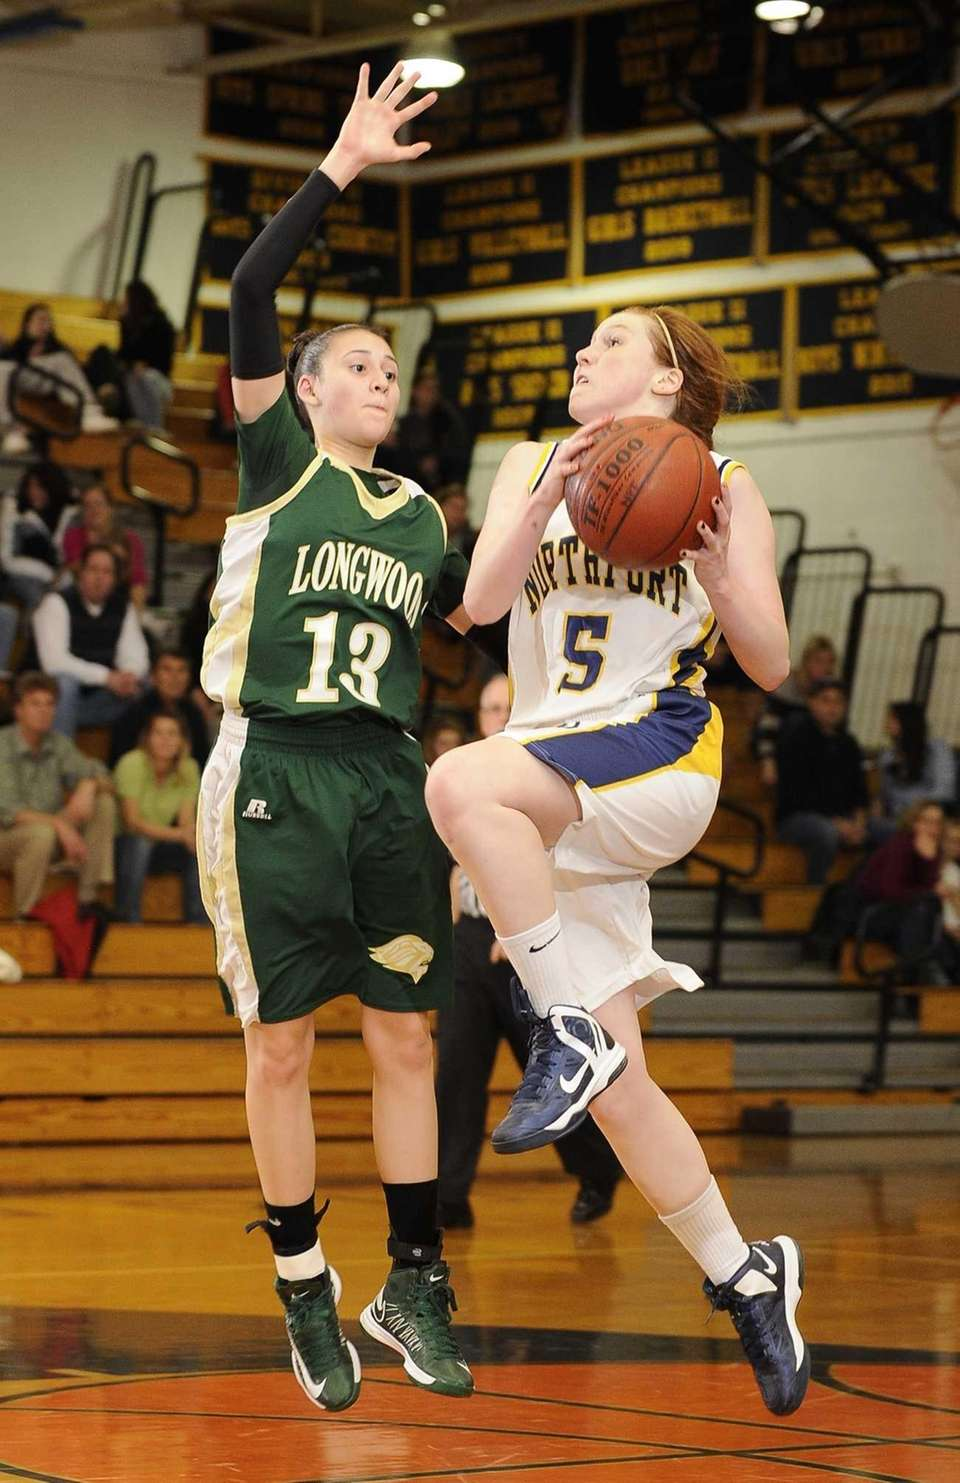 Northport guard Lizzy Atkinson drives in for a